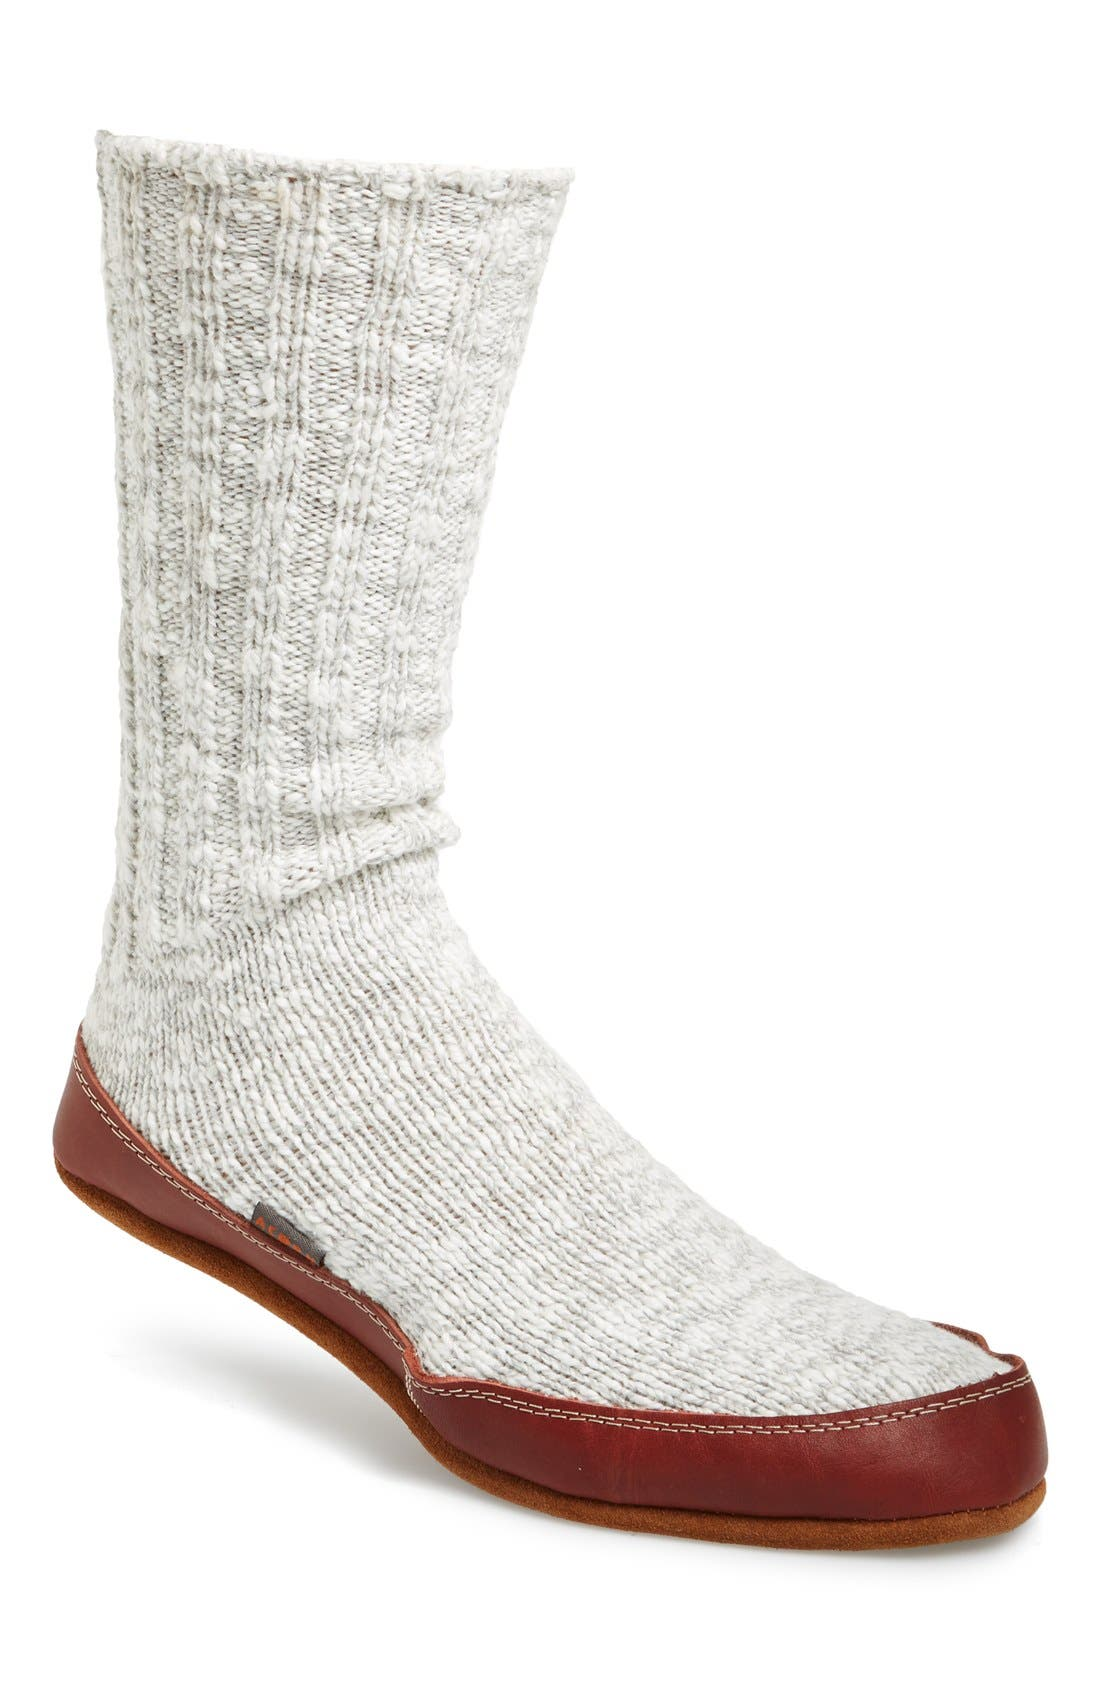 Alternate Image 1 Selected - Acorn Slipper Socks (Online Only) (Men)